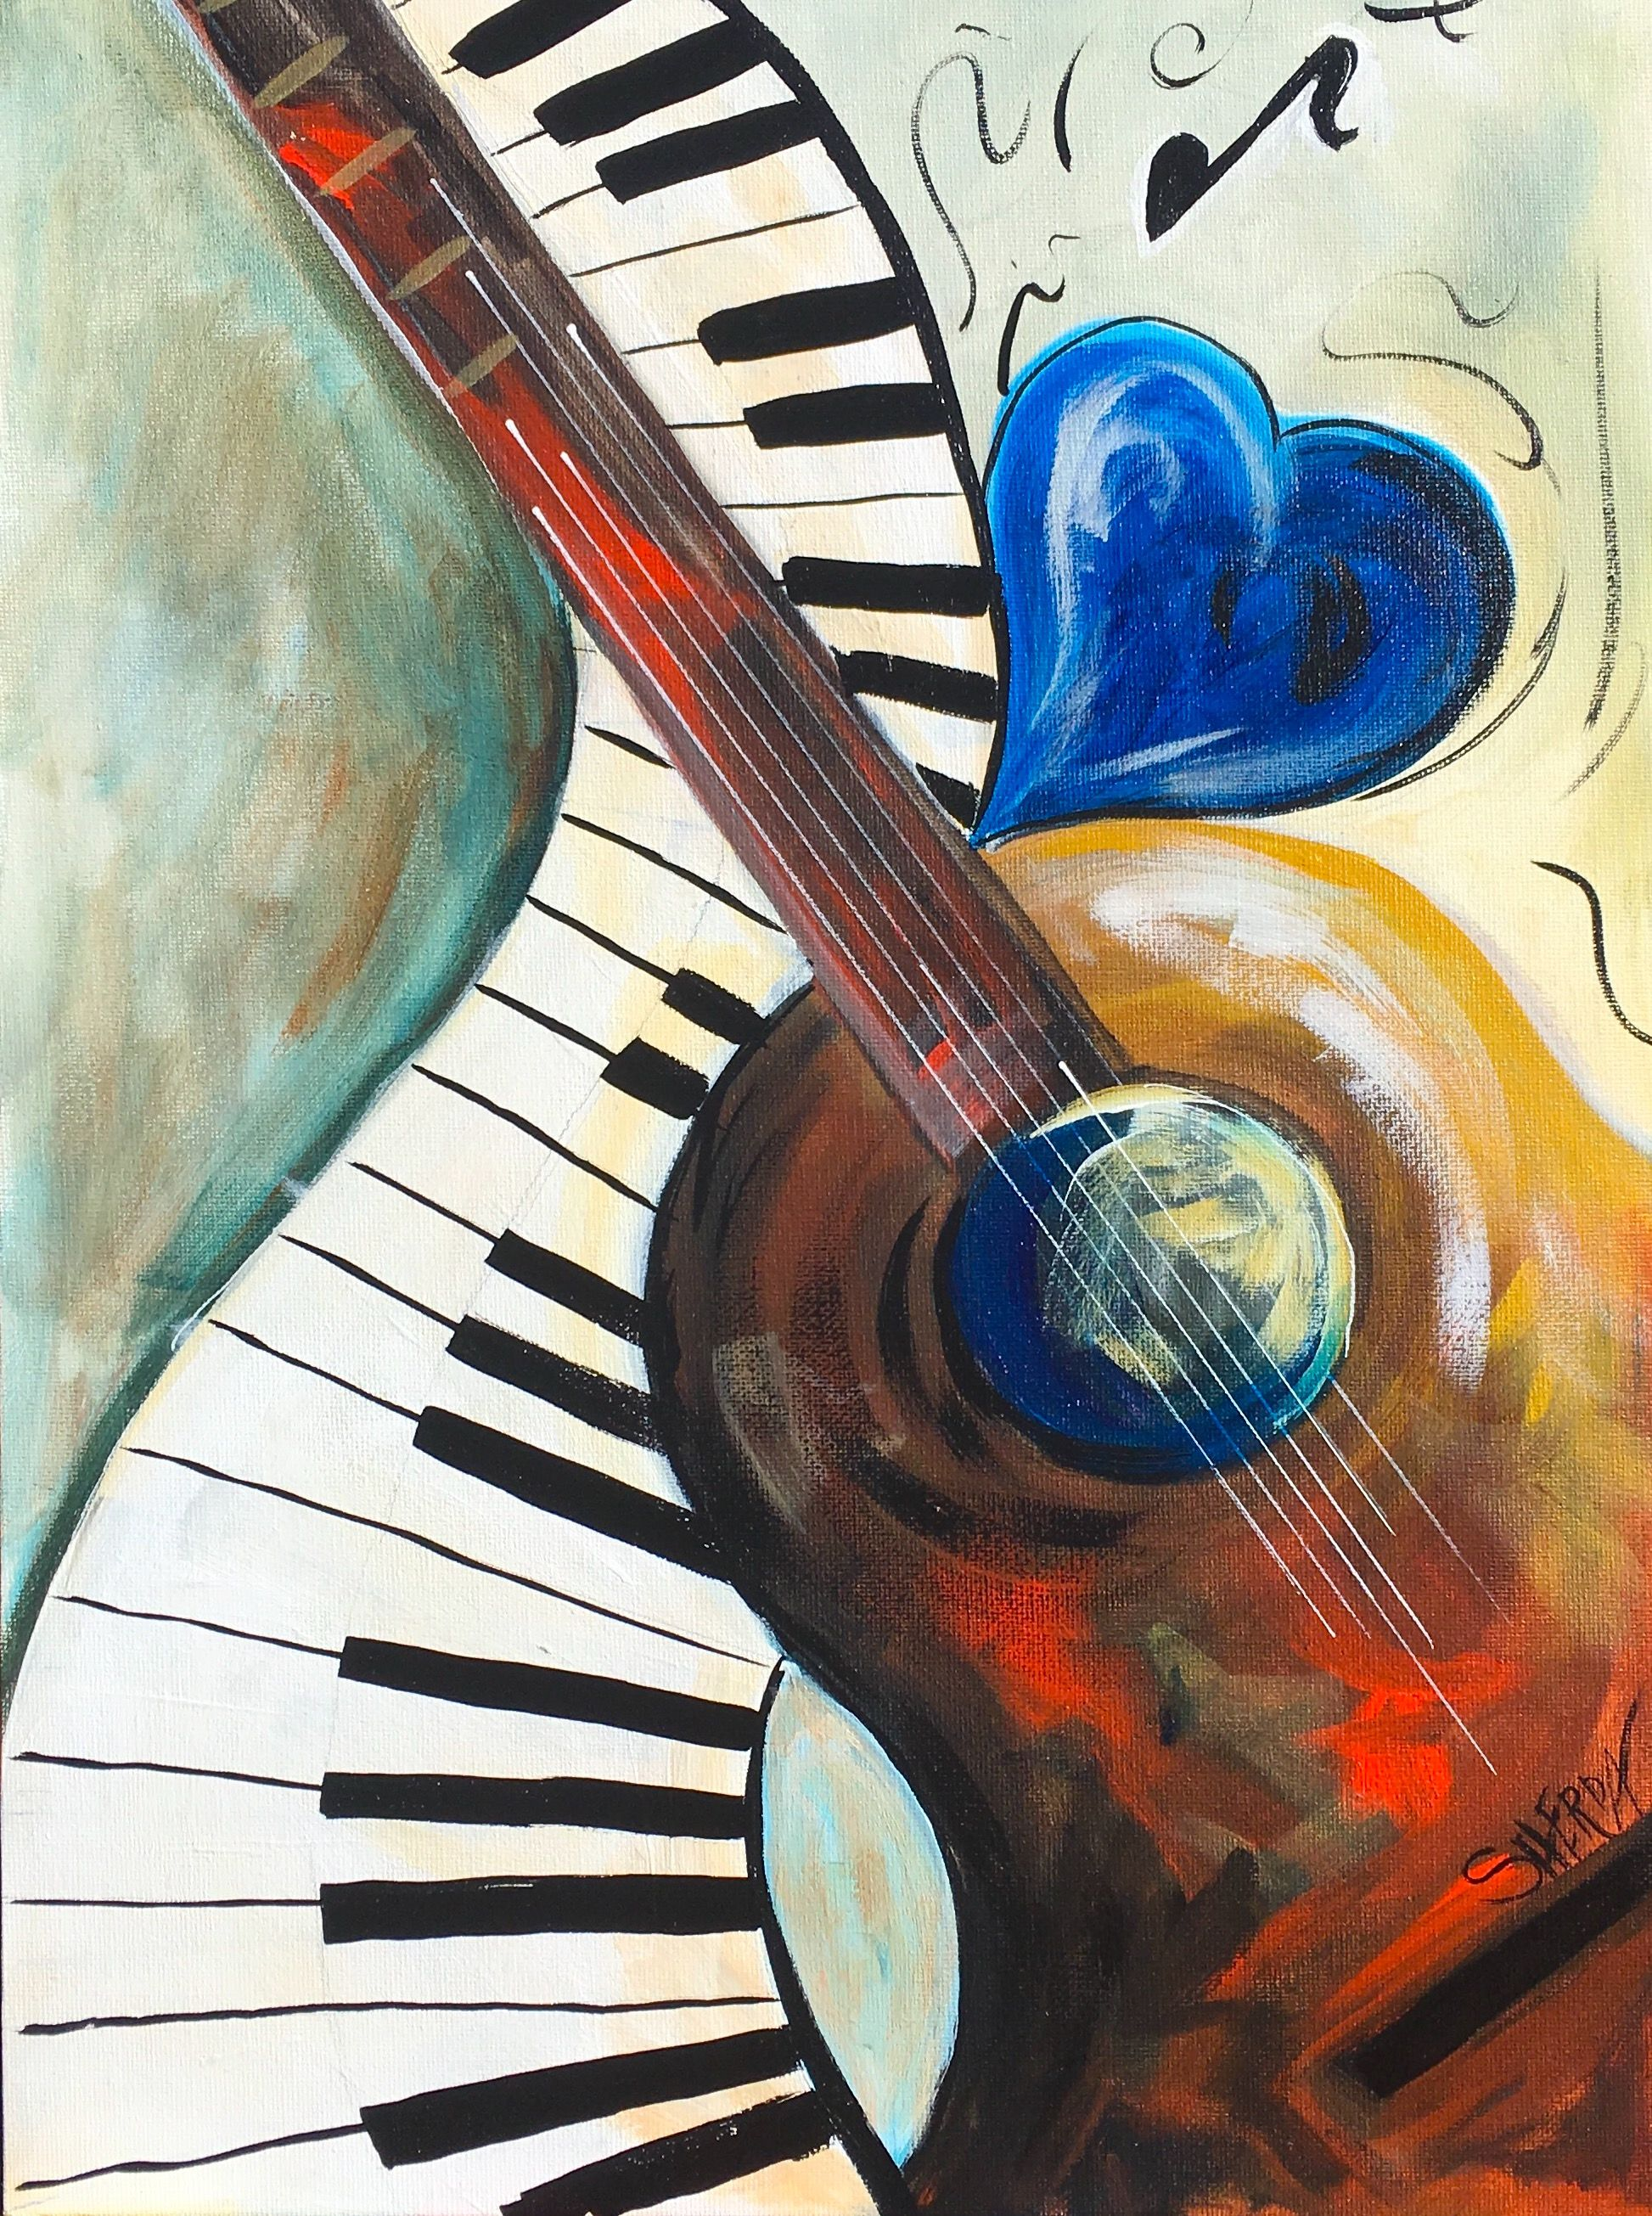 Abstract Music Acrylic Painting On Canvas With Heart Guitar And Piano For The Fully Guided Free Tutorial On Youtube By T The Art Sherpa Music Painting Painting